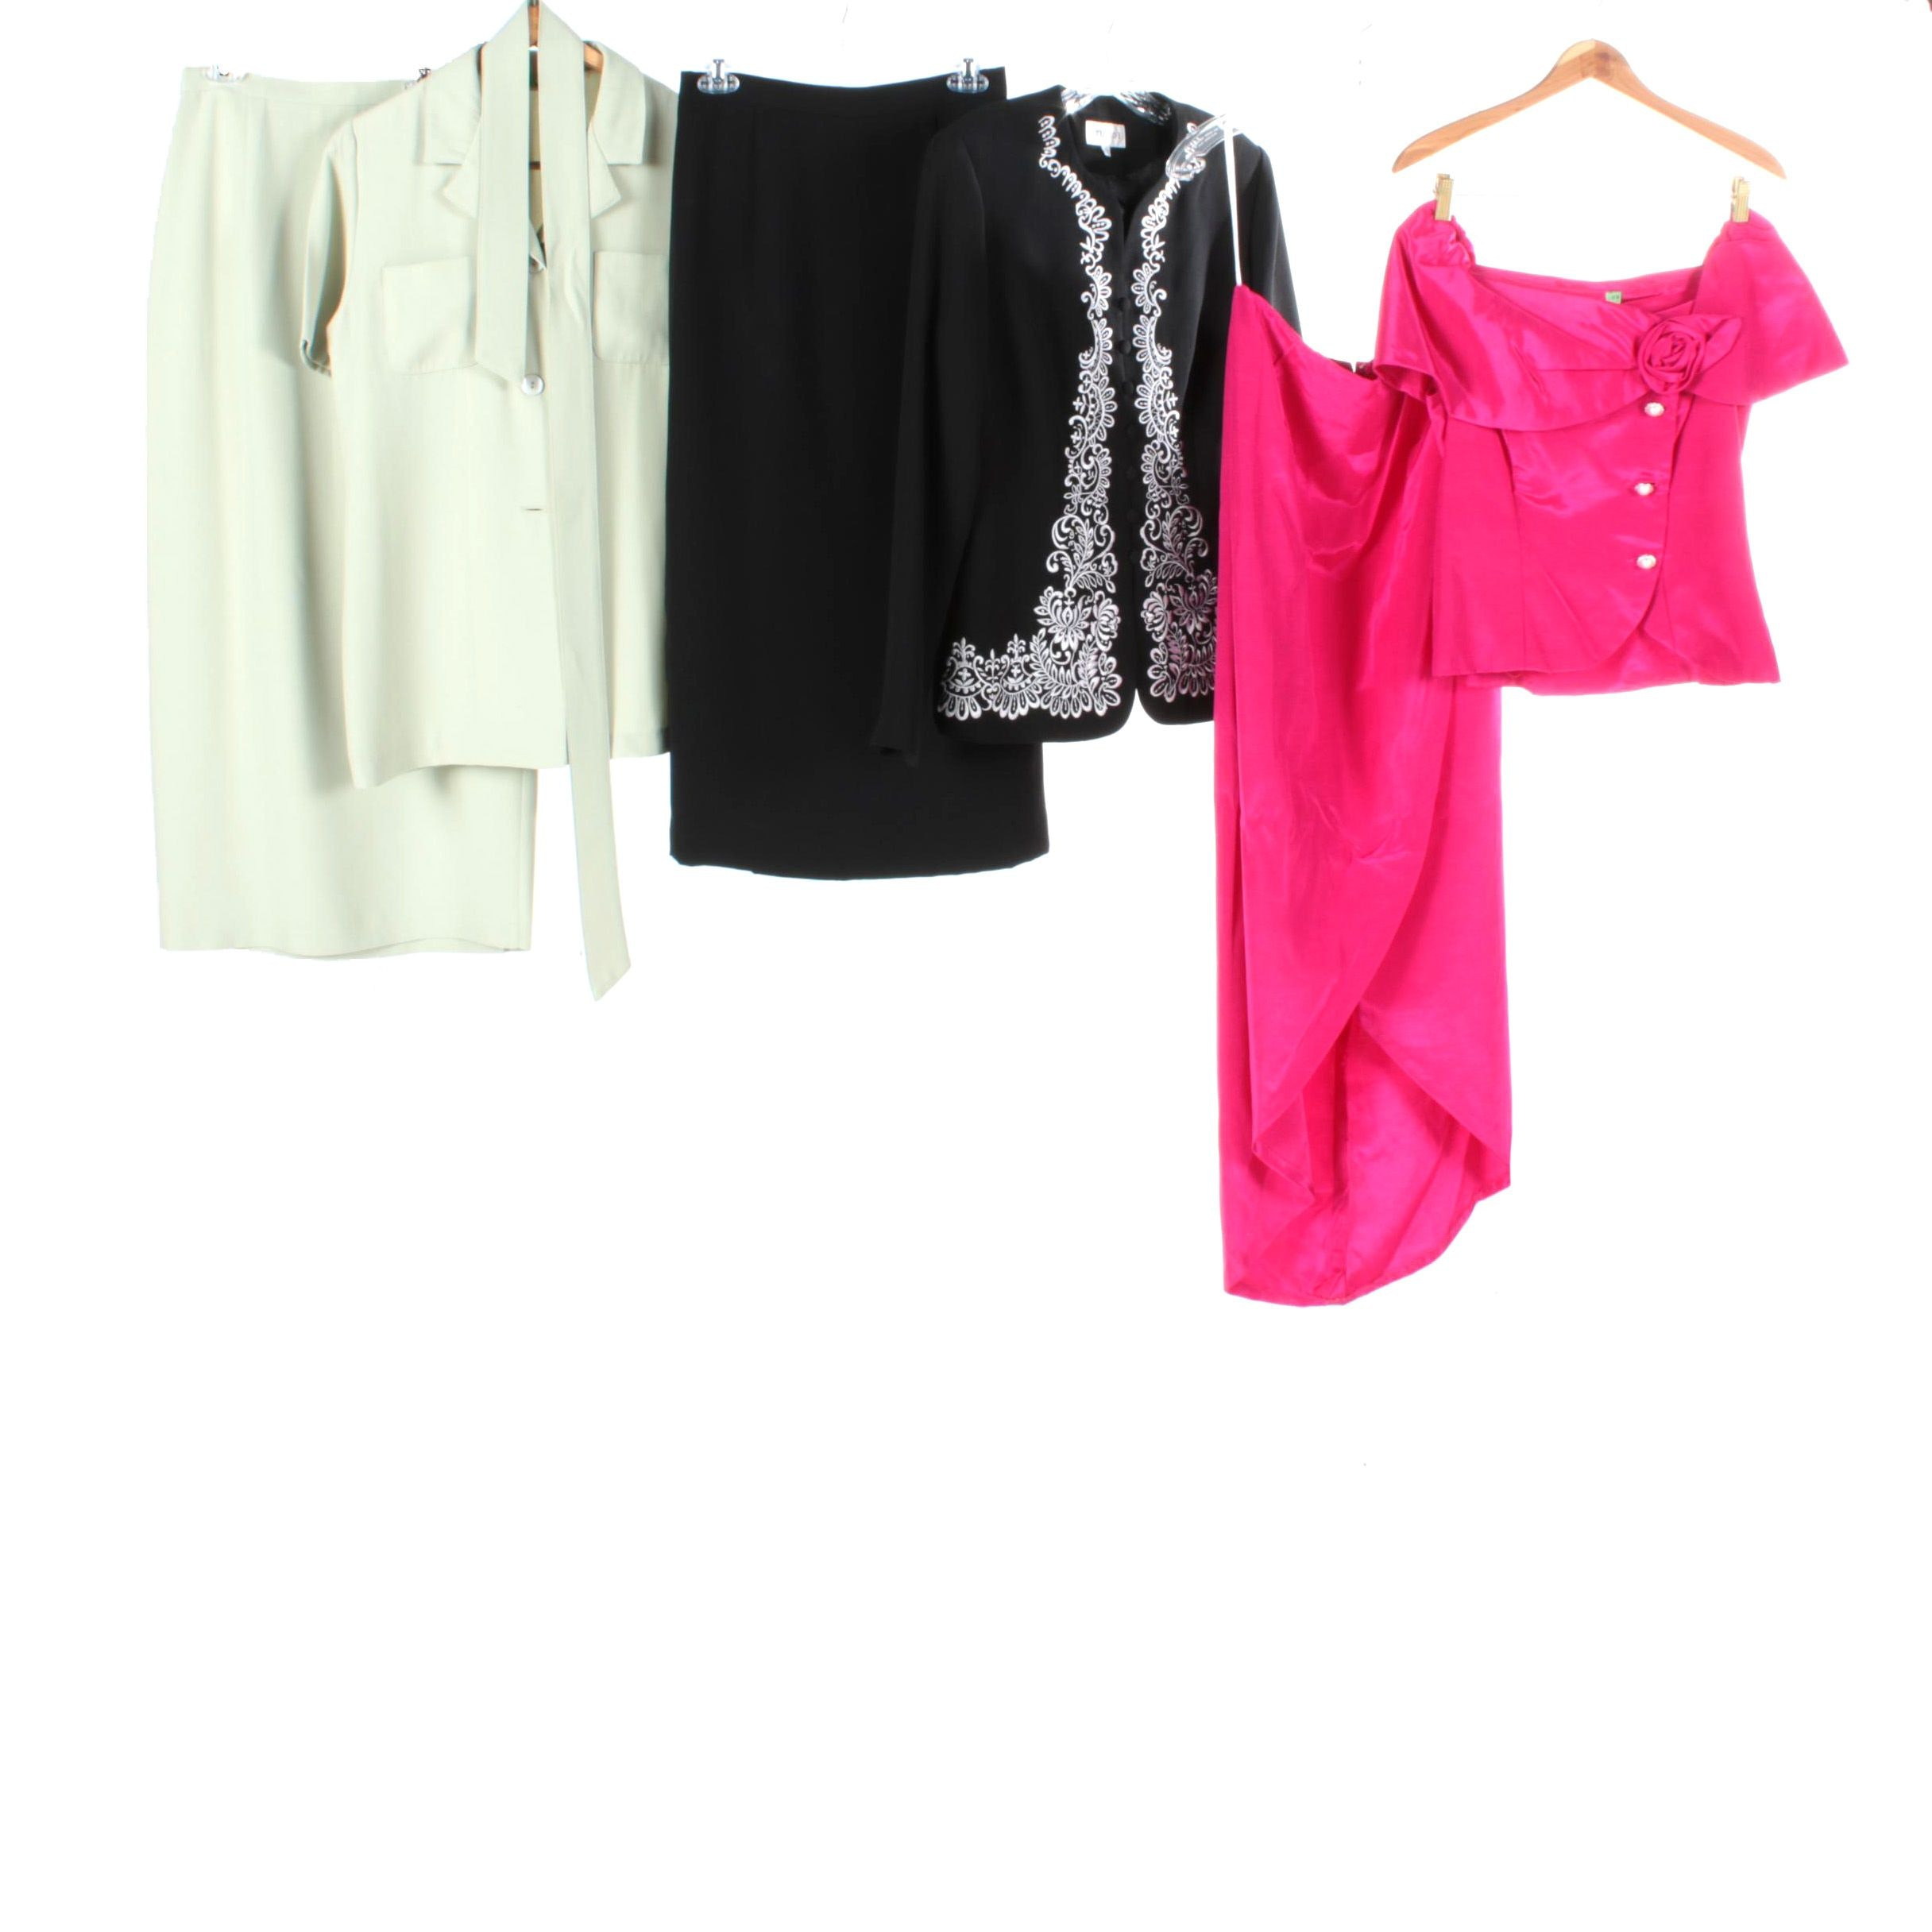 Women's Skirt Sets Including Studio I